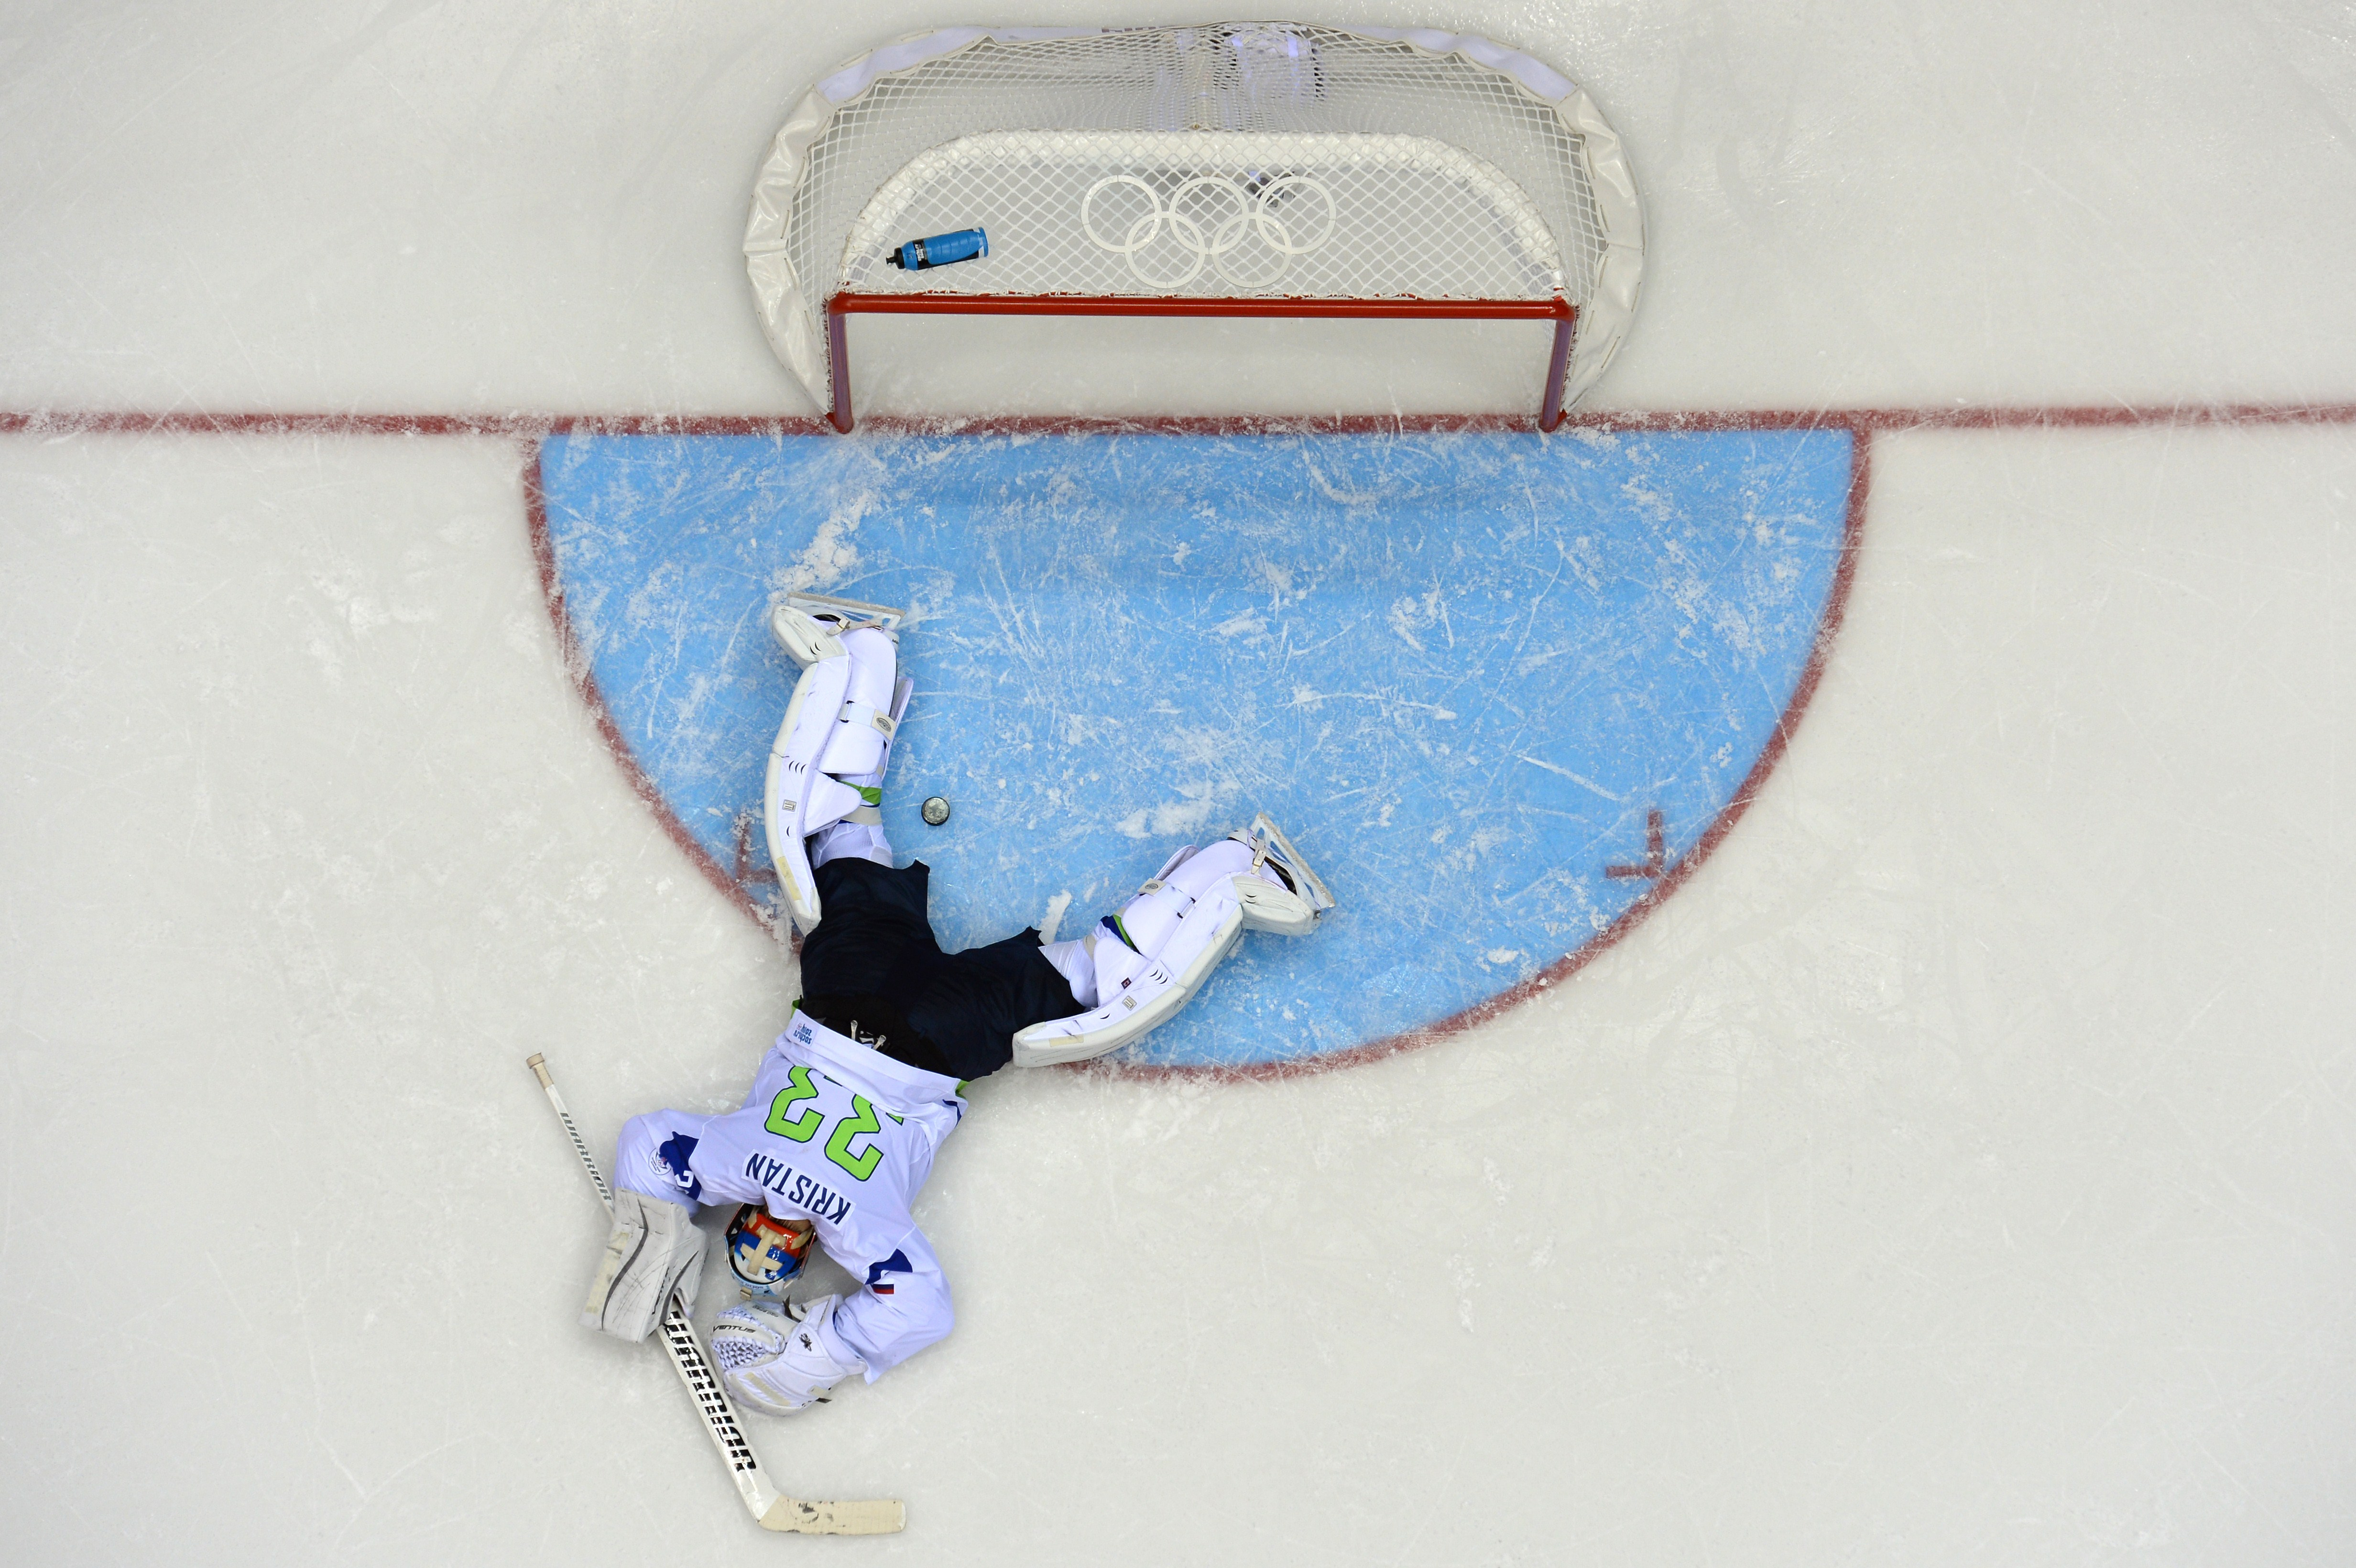 Slovenia's goalkeeper Robert Kristan reacts after Russia scored a fifth goal during the Men's Ice Hockey Group A match between Russia and Slovenia.